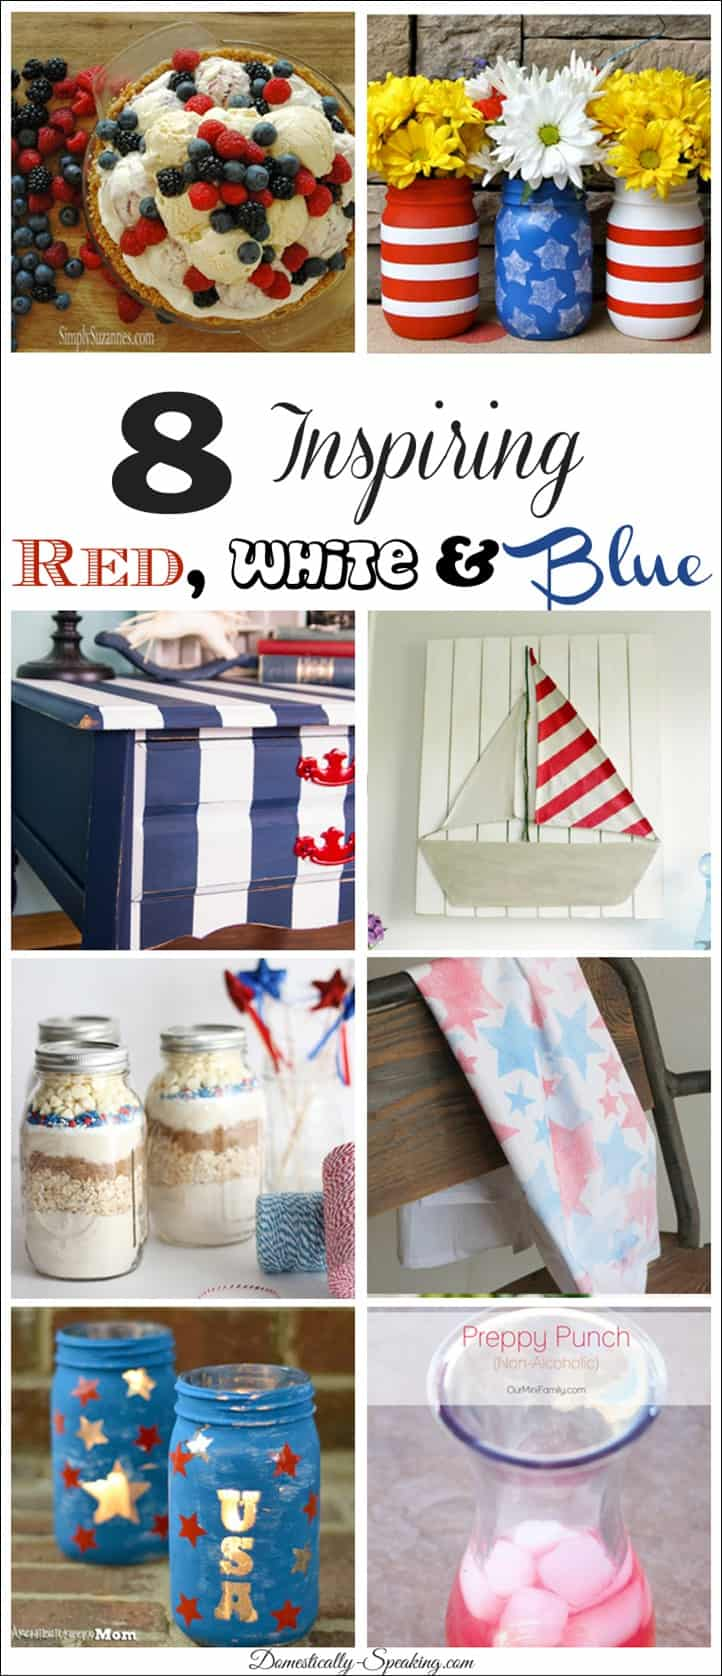 8 Inspiring Red White and Blue Recipes, Crafts and Decor